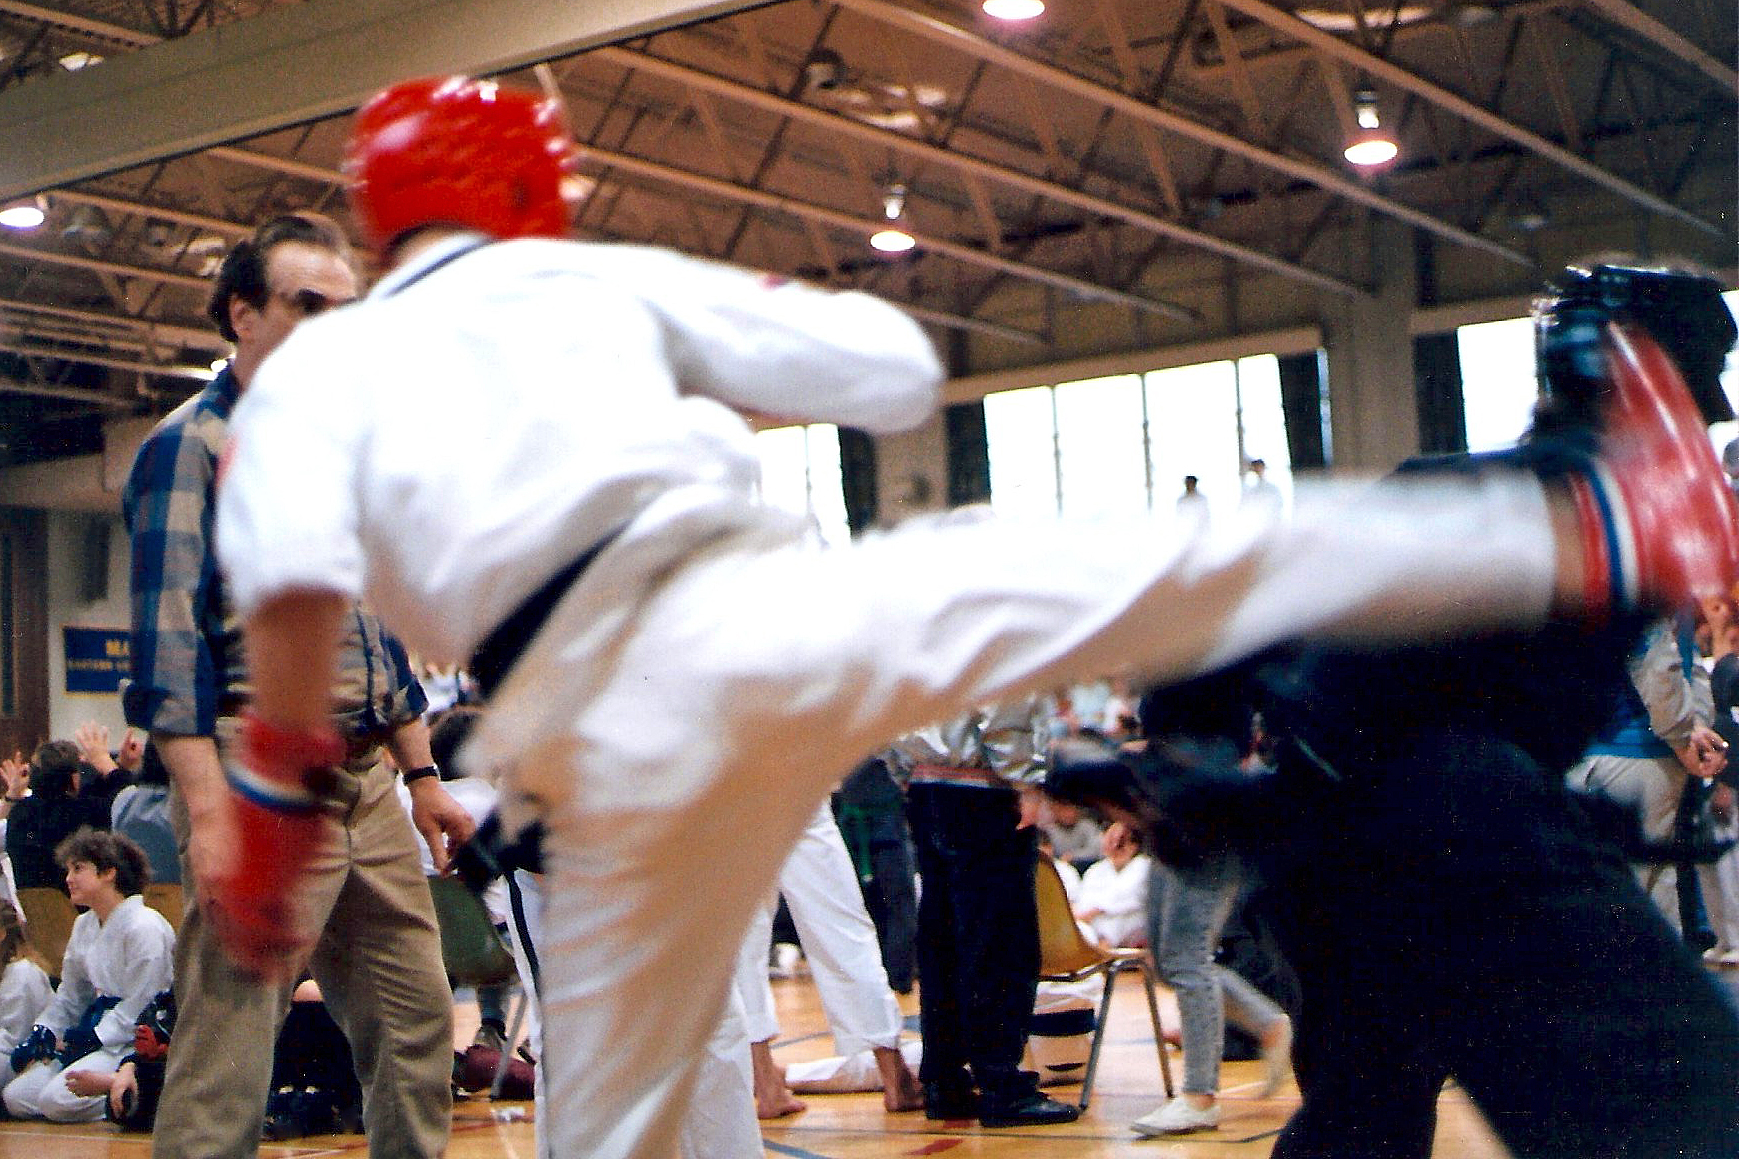 The header image for this story is not a stock photo, by the way. It was taken at the actual tournament in 1990. The person in the black uniform (who's not doing well in the photo) is one of the five black belts in the car with me in the story.